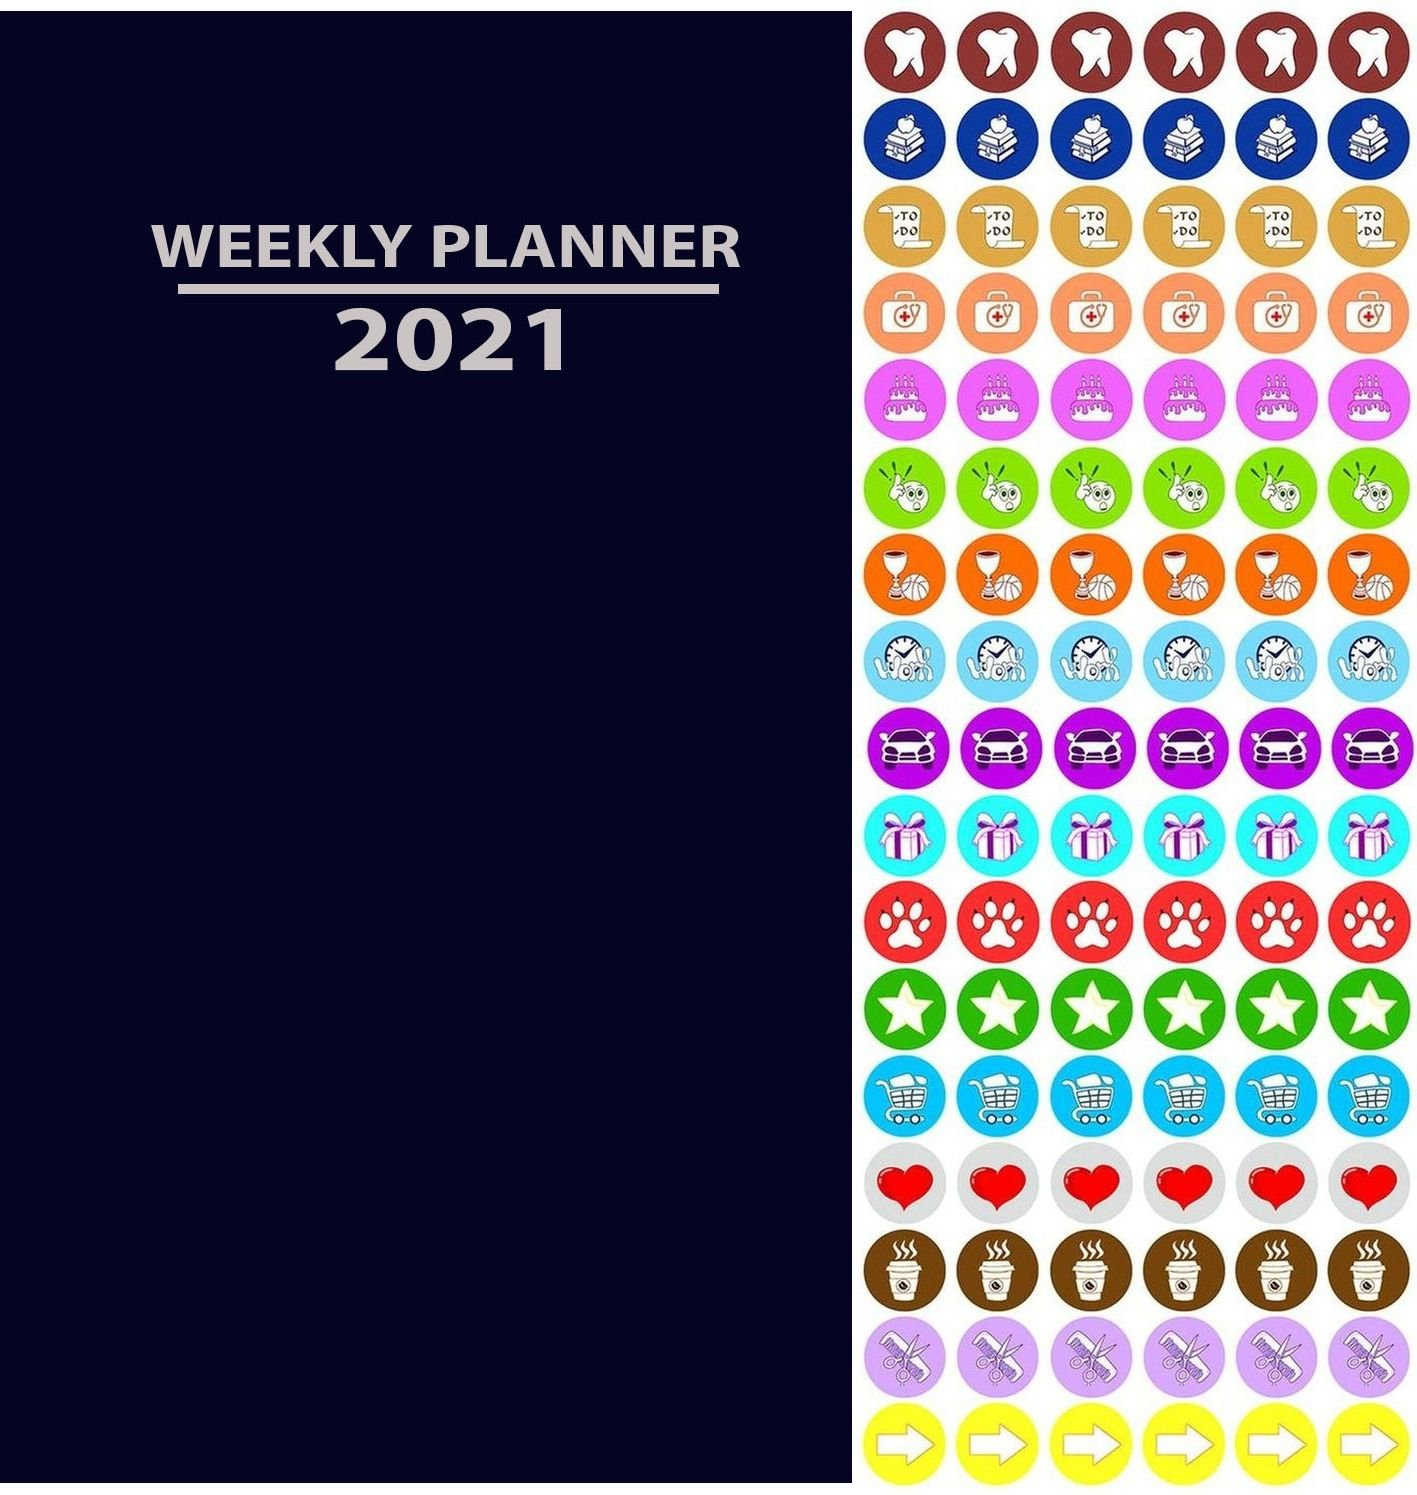 2020 Weekly Pocket Appointment Planner/Calendar/Organizer (Navy Blue) - with 100 Stickersers